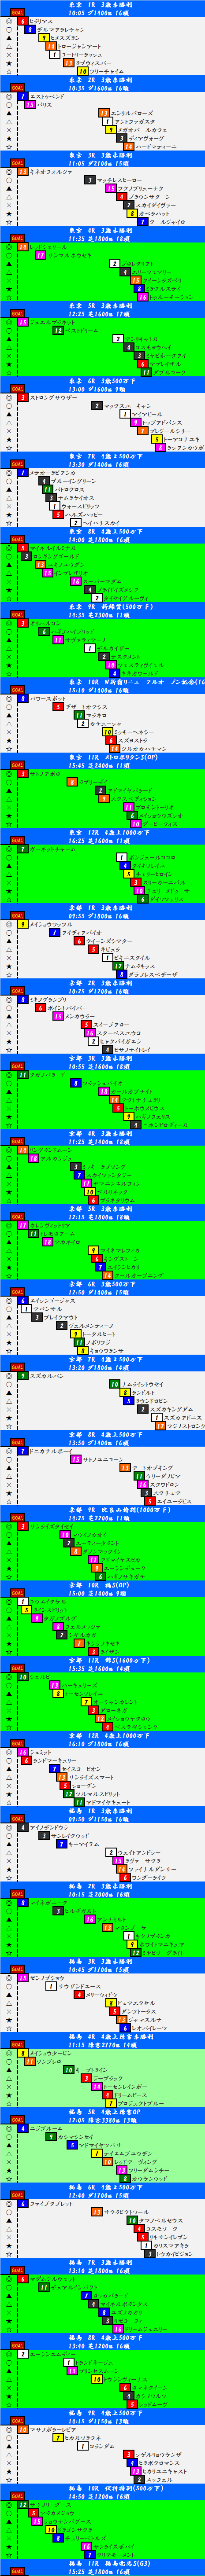 201404261.png